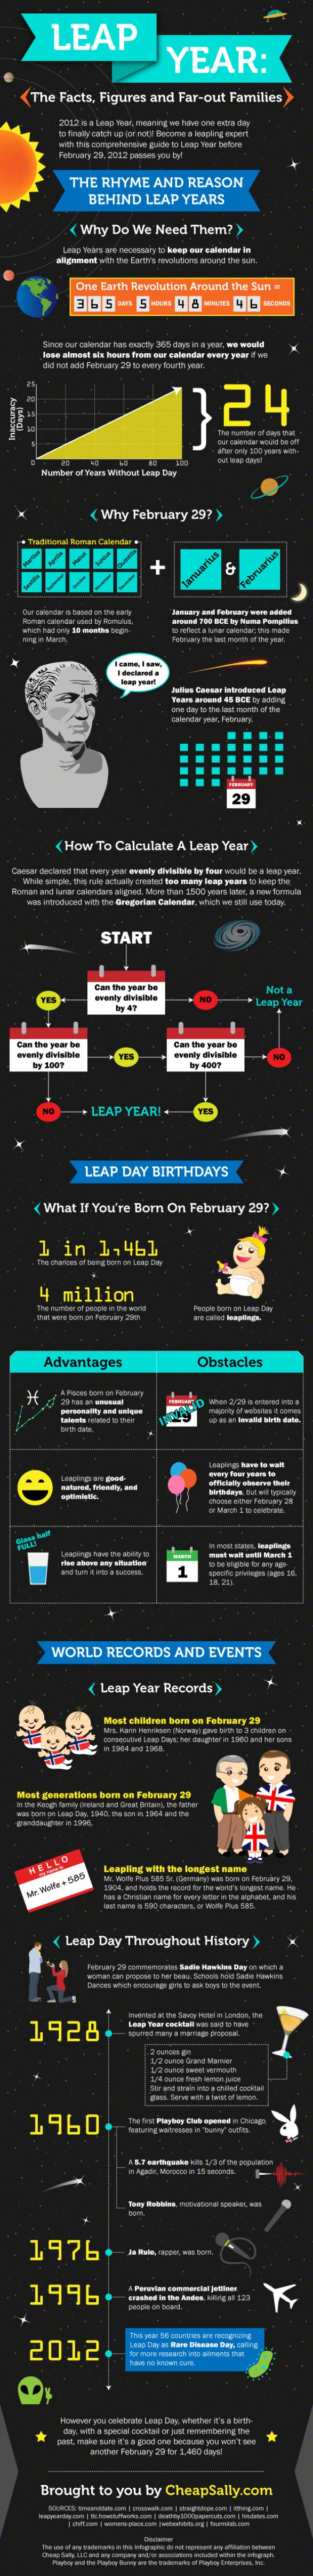 Leap Year: The Facts, Figures and Far-Out Families